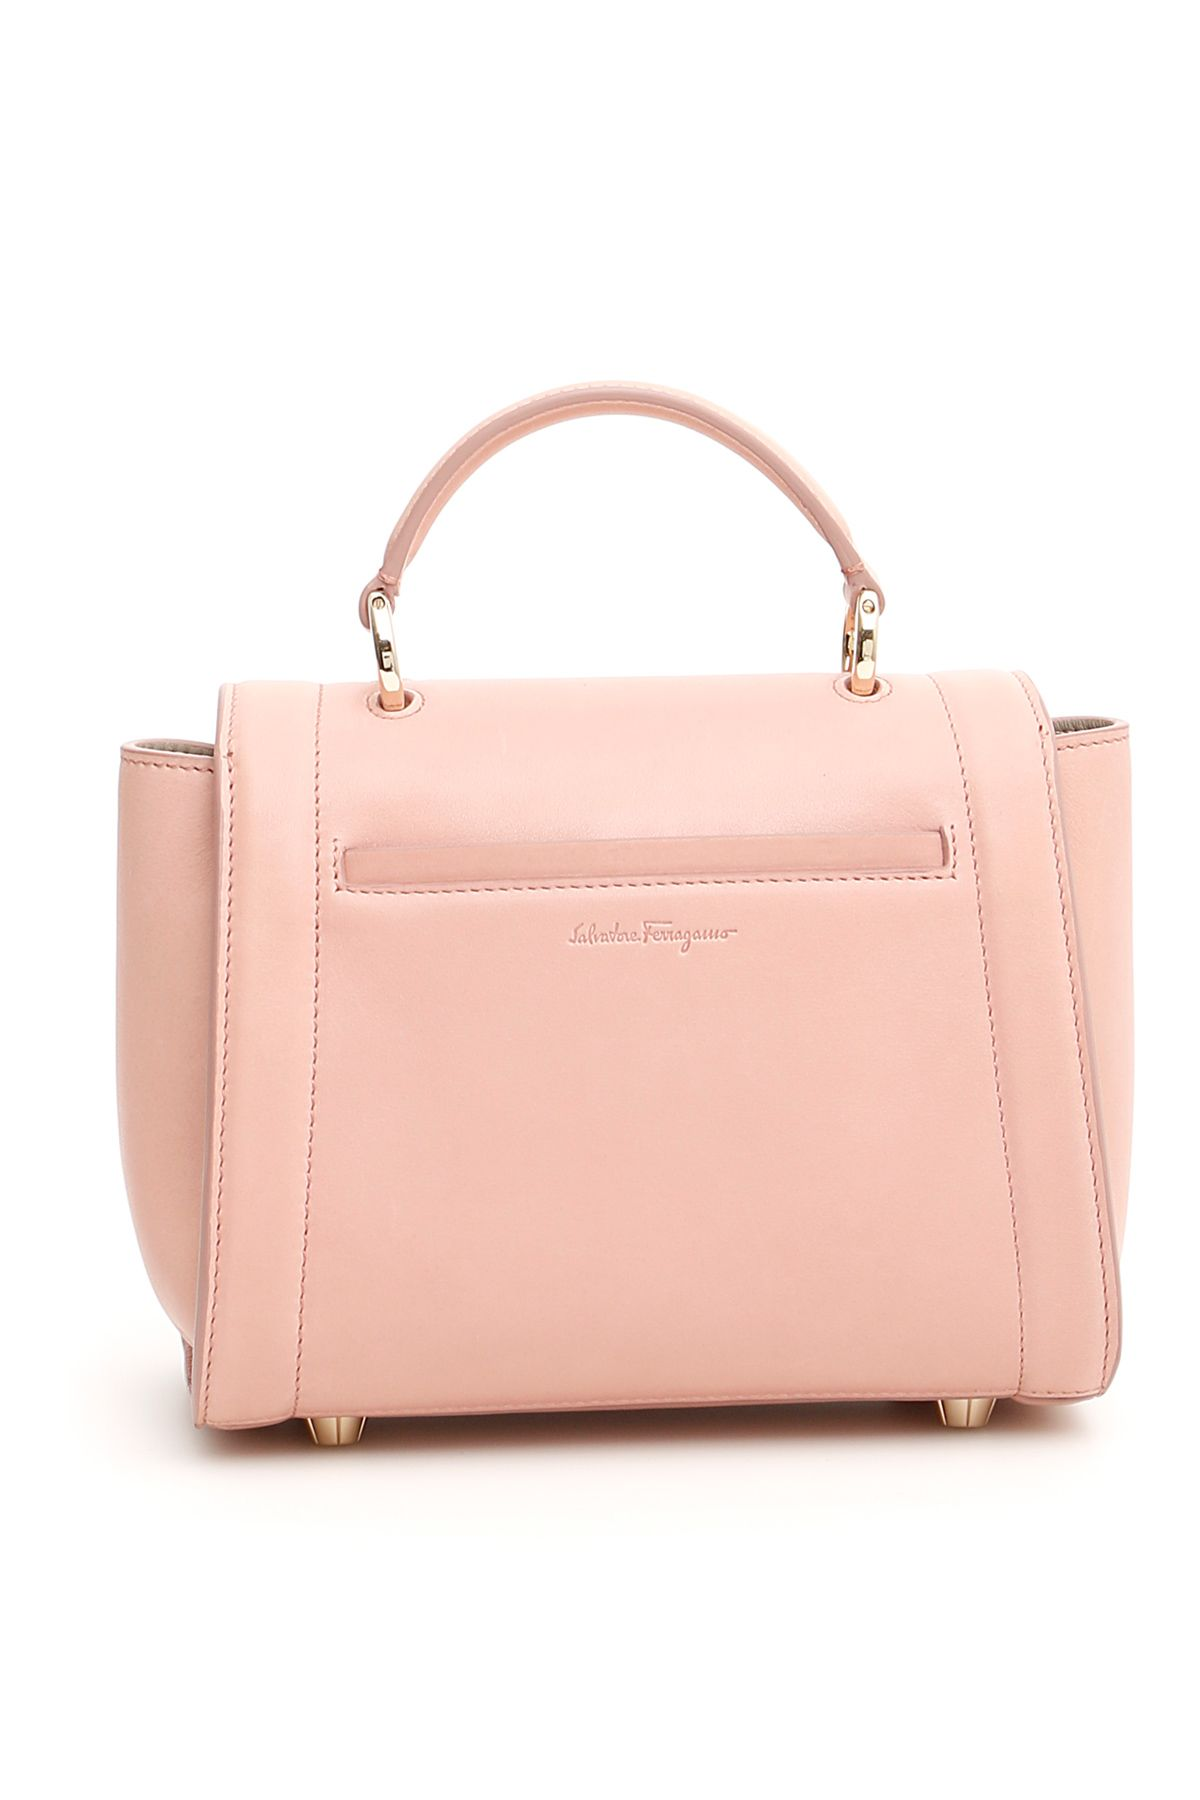 3fa67f8705e1 Salvatore Ferragamo Salvatore Ferragamo Mini Sofia Rainbow Bag ...